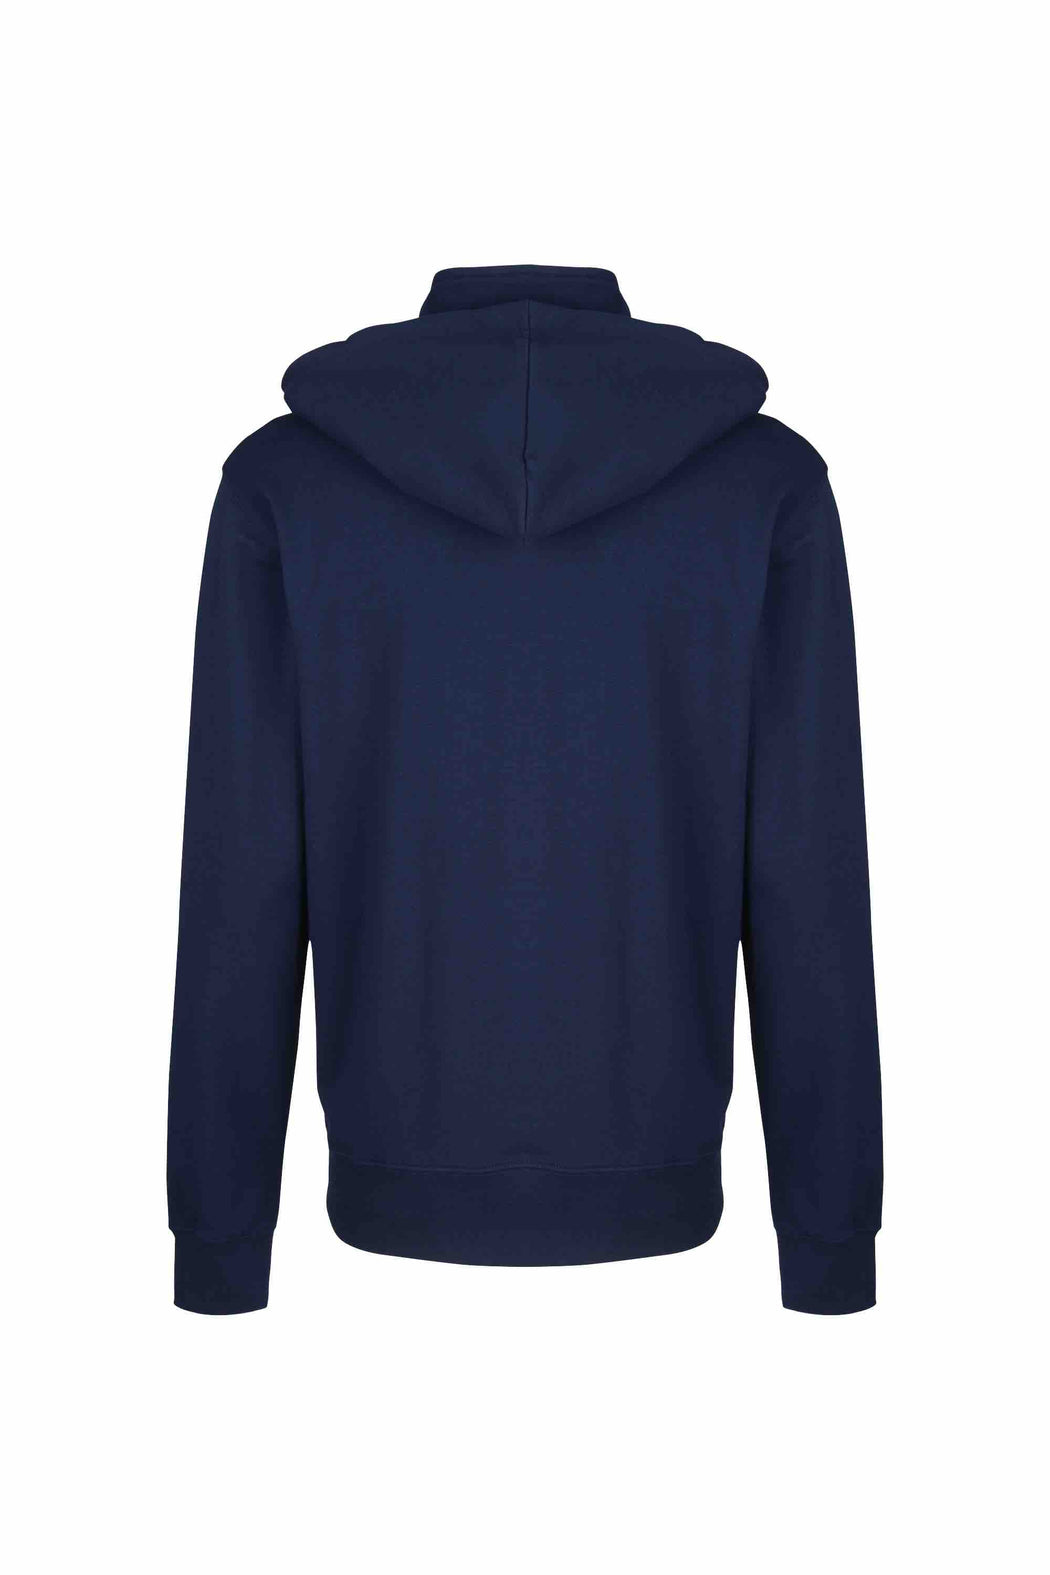 Back view of Men Pullover Hoodie Turtleneck, made with organic cotton in Navy